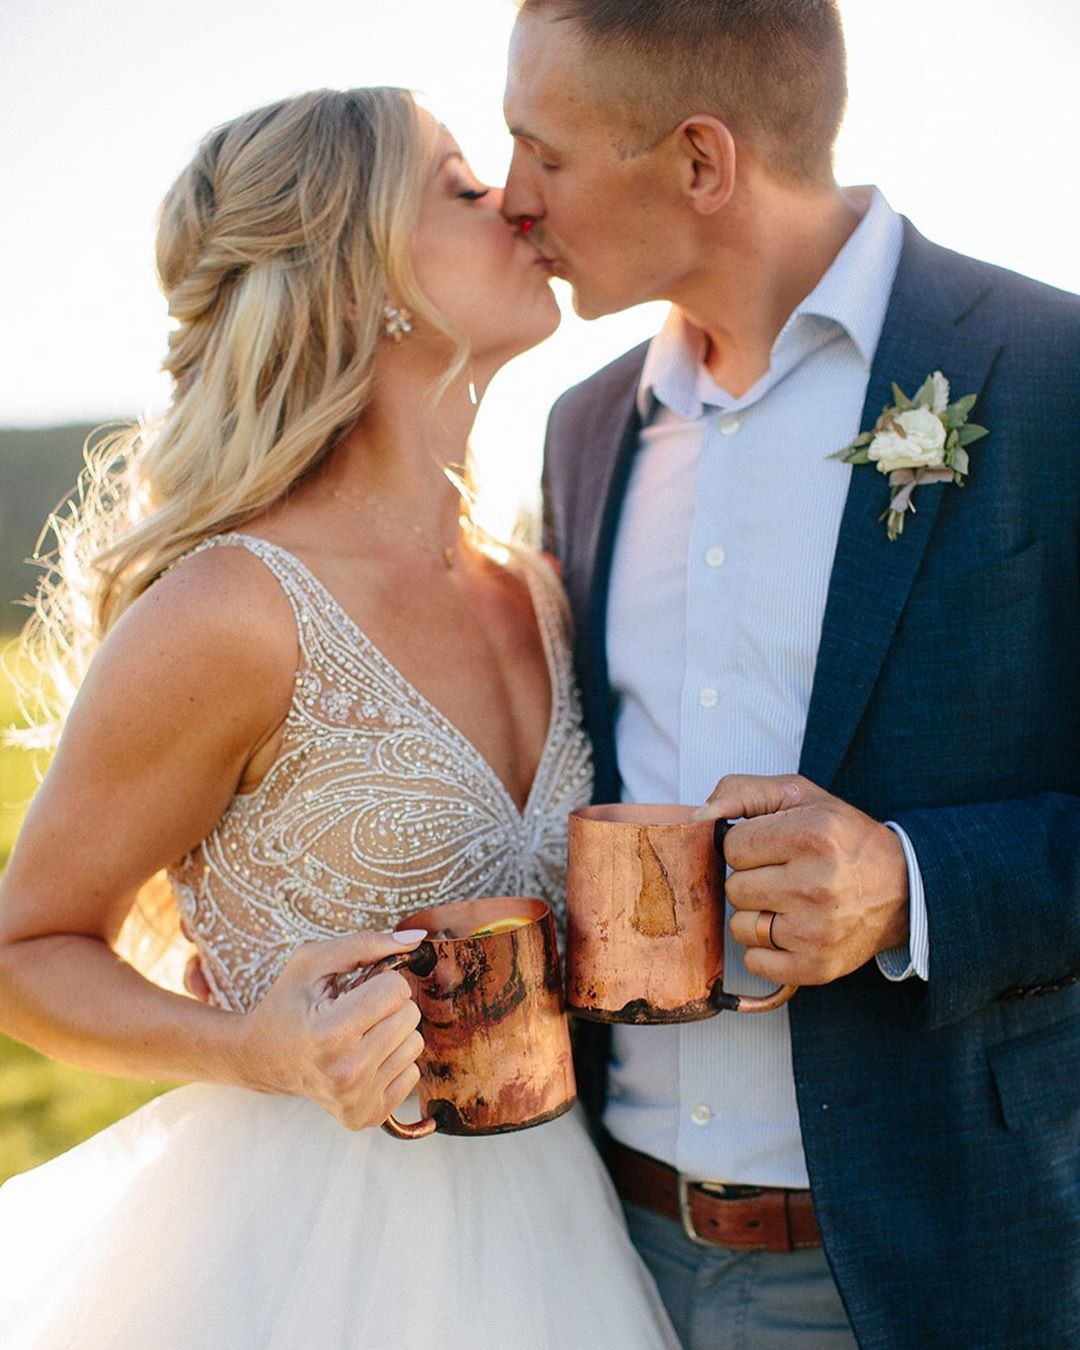 We love being a part of the best moments of your life. Thanks for sharing this awesome photo with us Brooke and Brenton! Congratulations